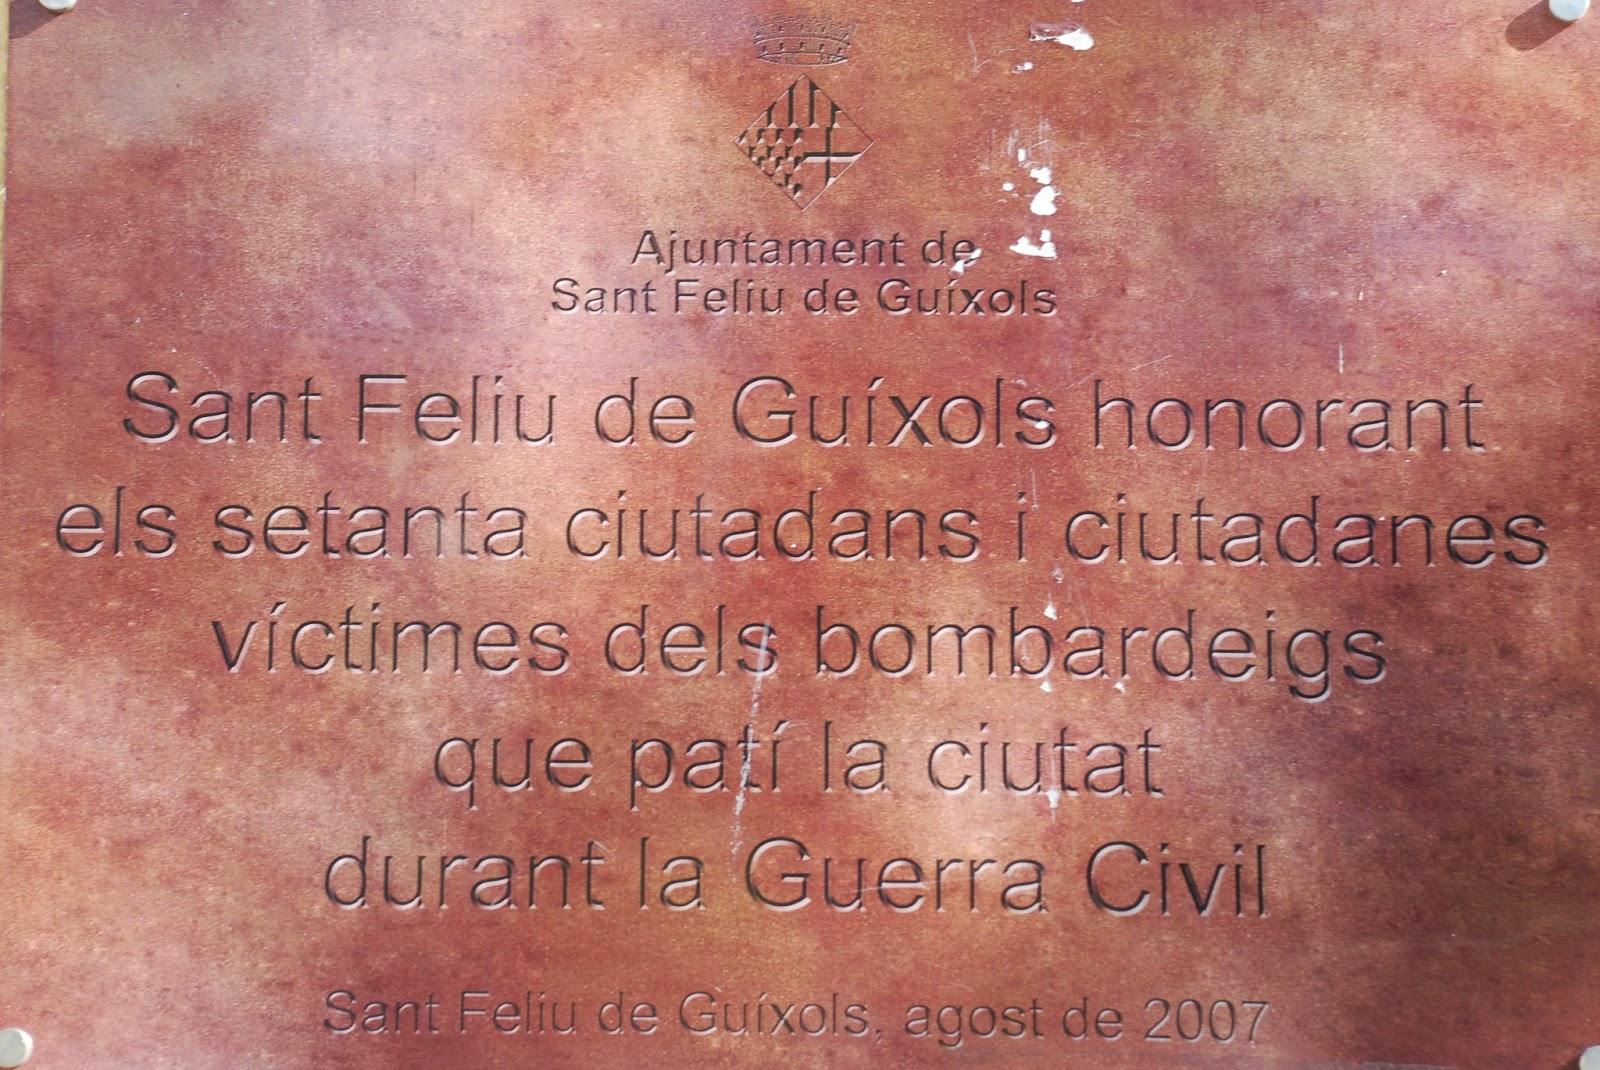 Memorial plaque to the 70 citizens who died in the bombing of Sant Feliu during the Civil War